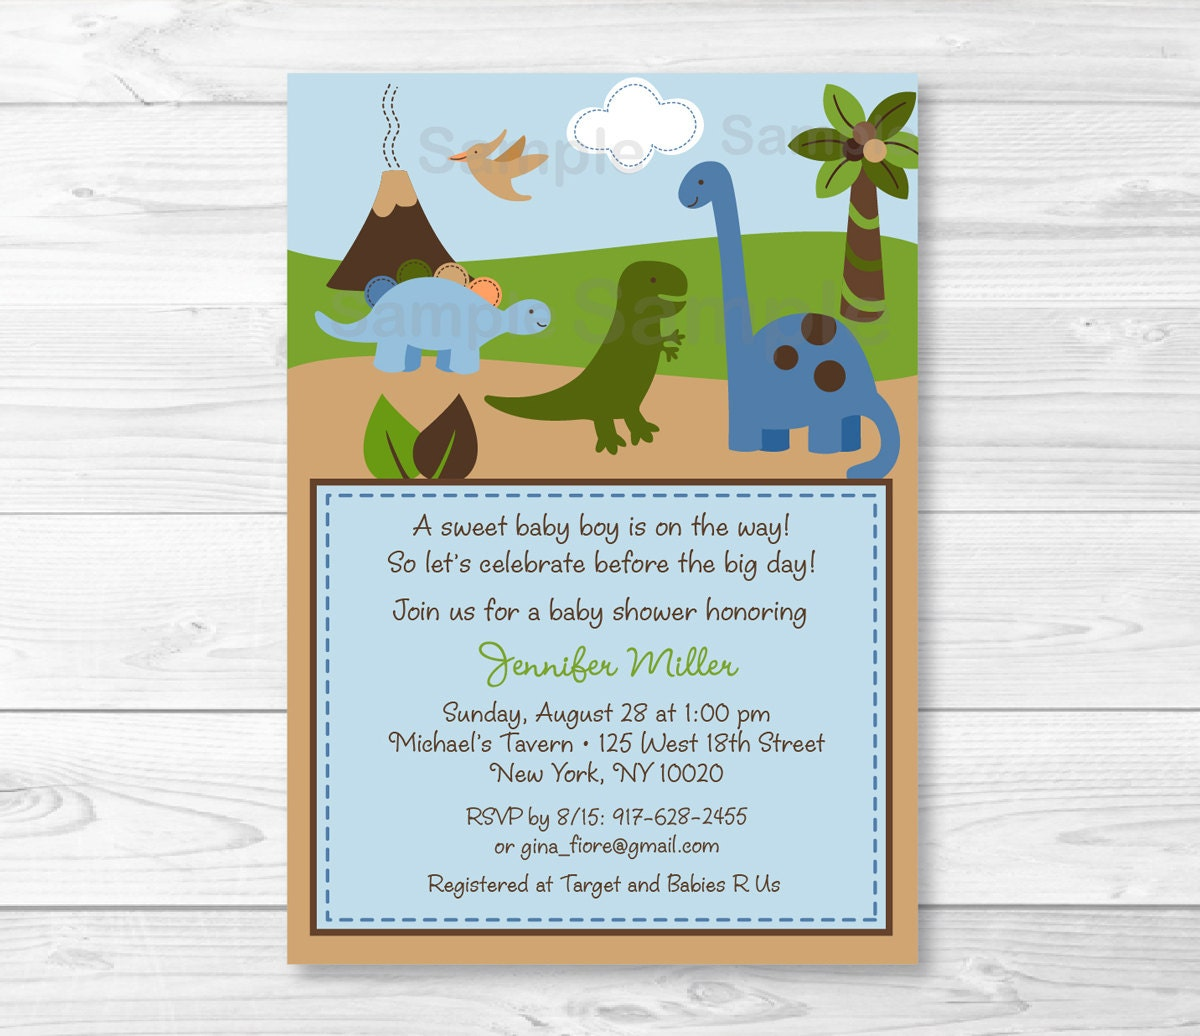 Cute Dinosaur Baby Shower Invitation / Dinosaur Baby Shower